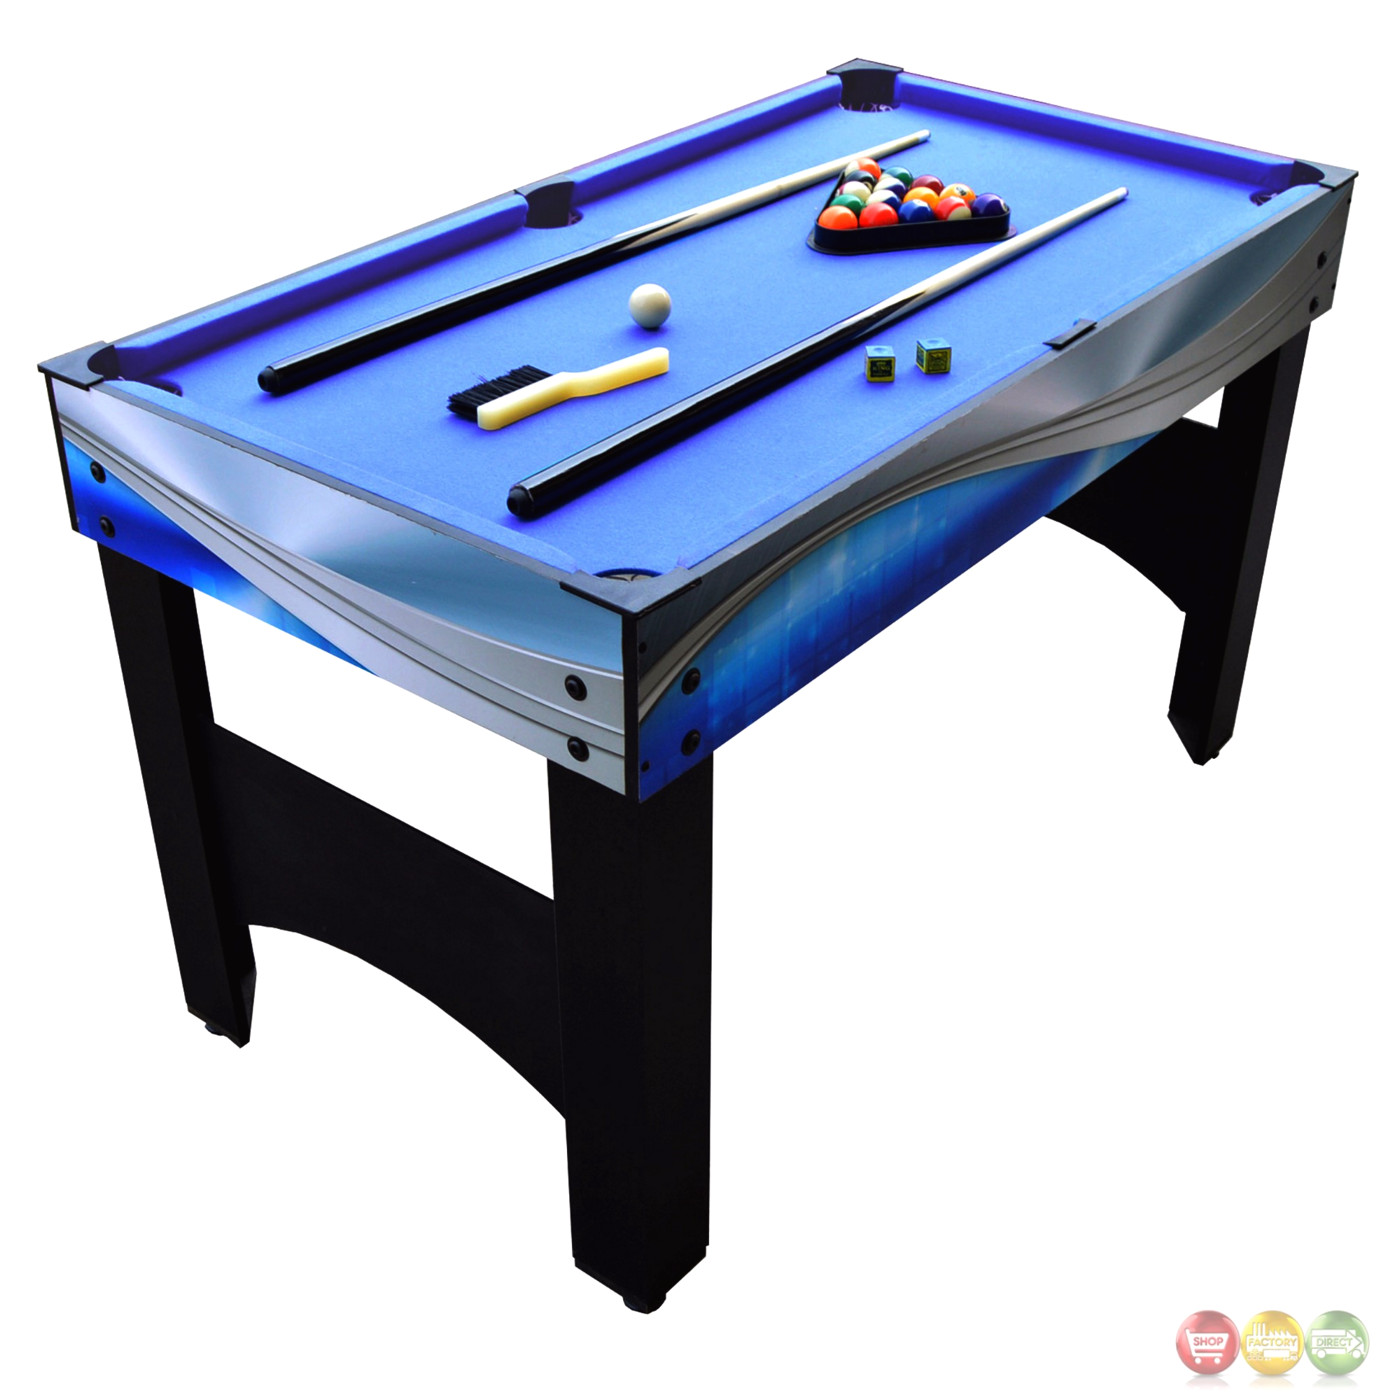 Matrix 54 blue silver 7 in 1 multi game table for 10 in one games table